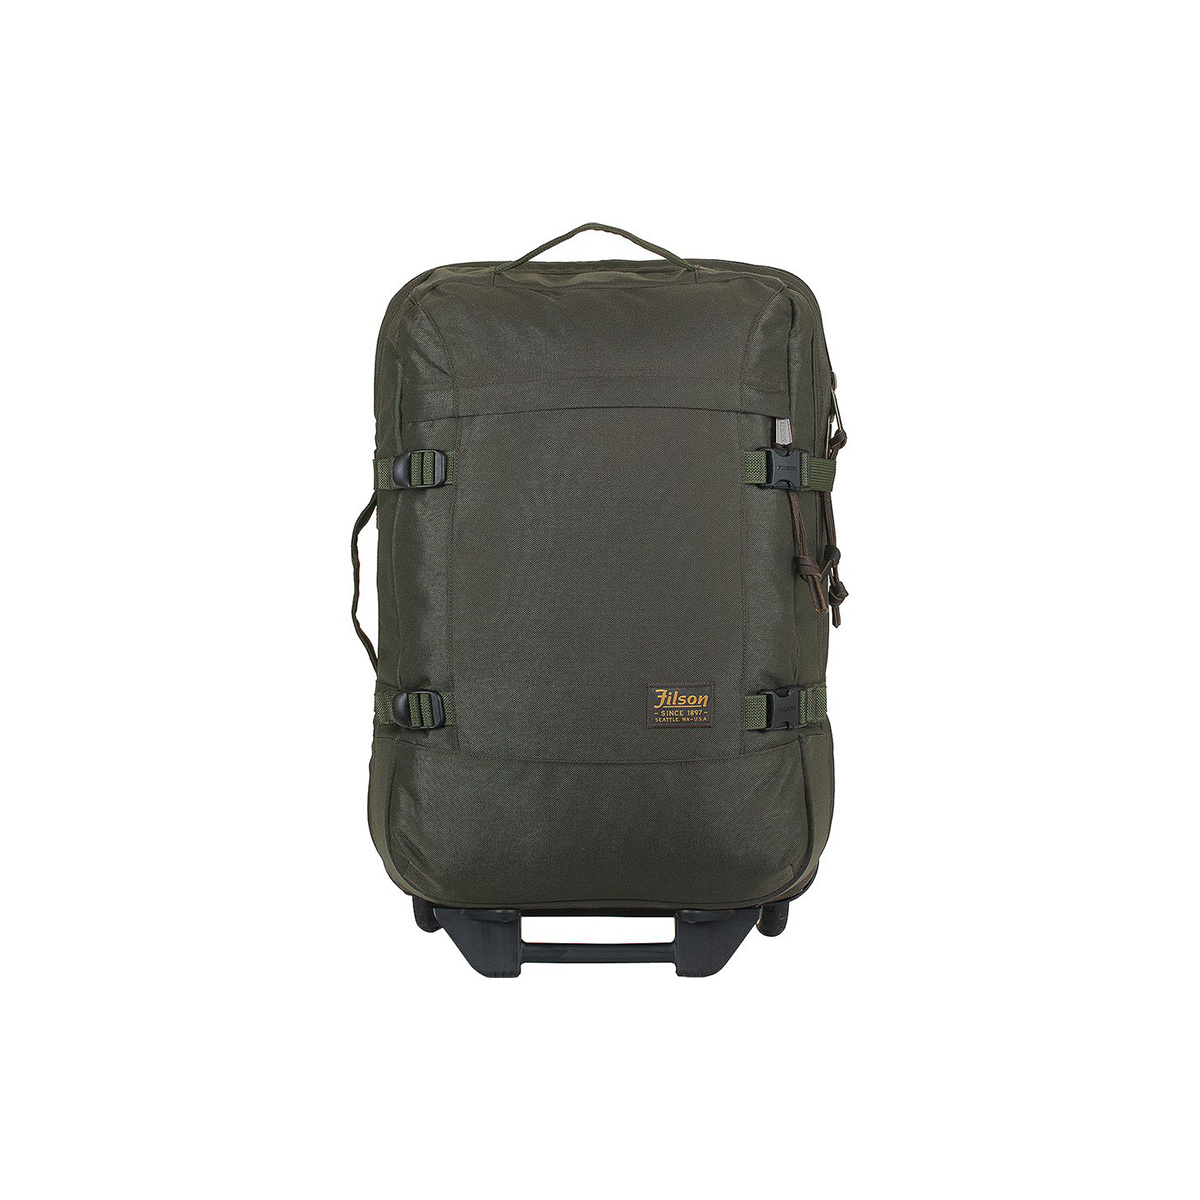 Filson Dryden 2-Wheel Carry-On